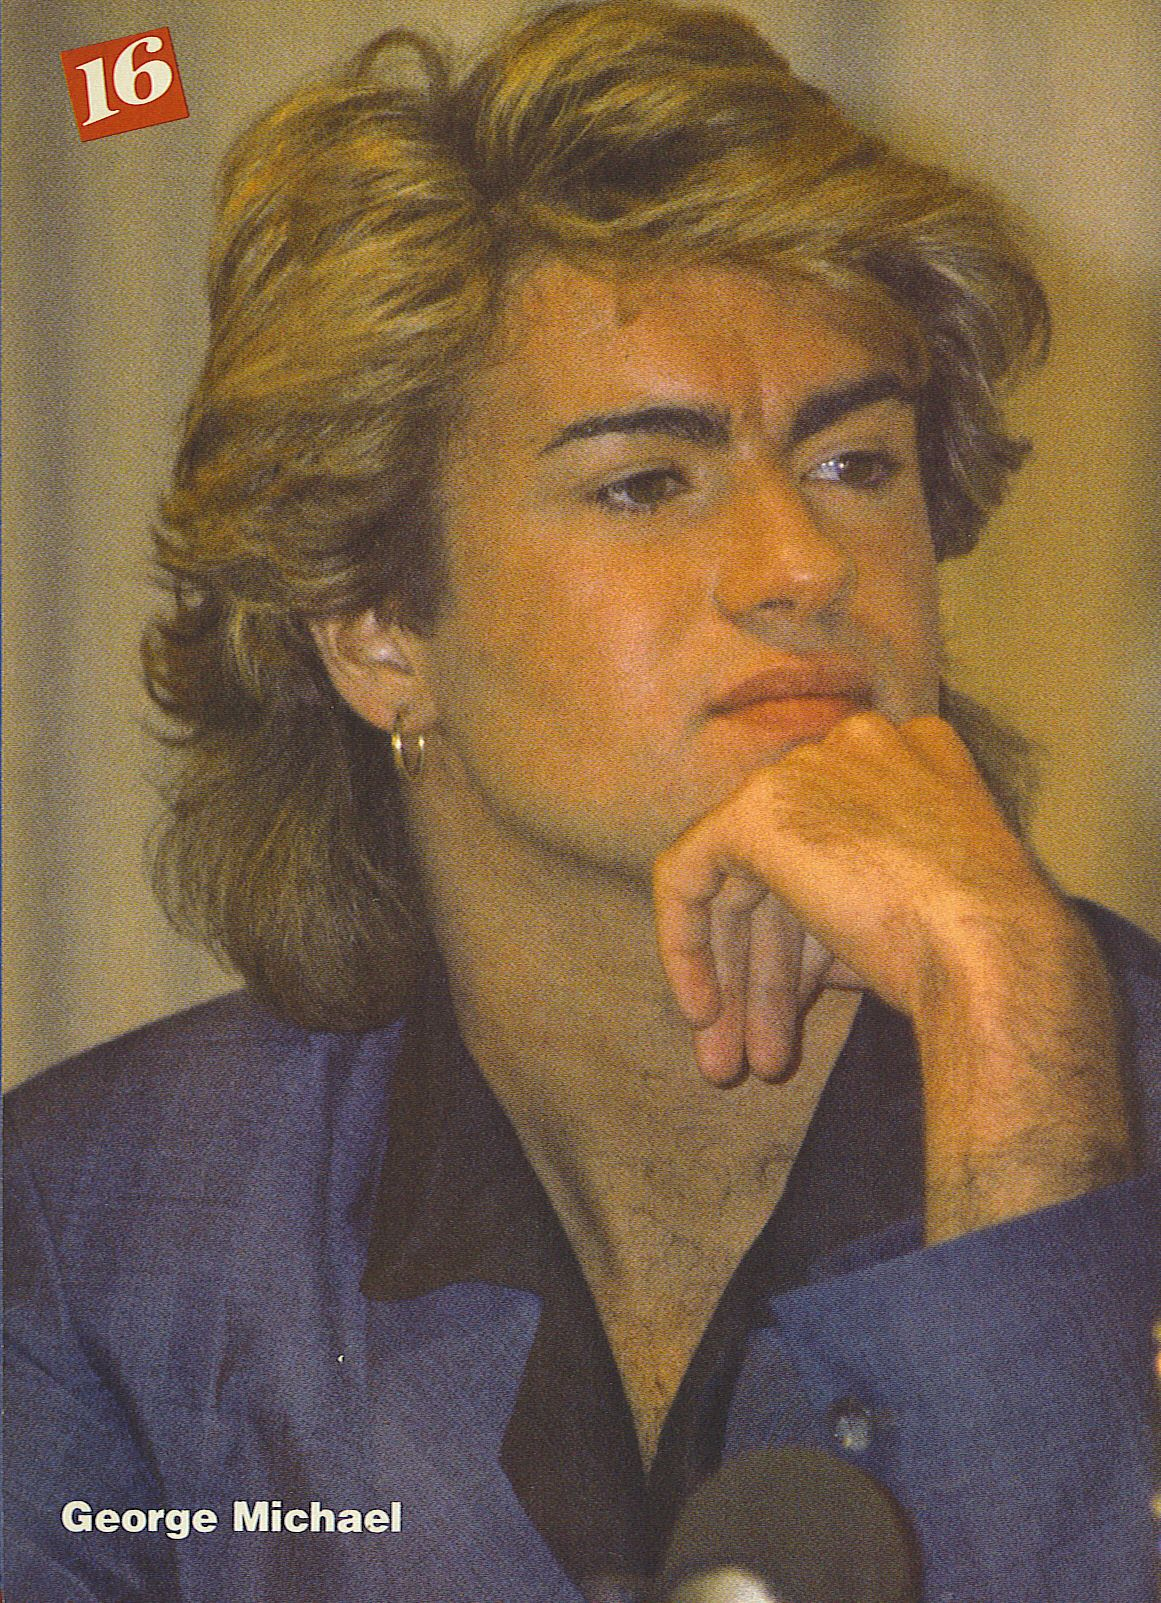 Photo of george michael for fans of George Michael. george michael, singer, handsom